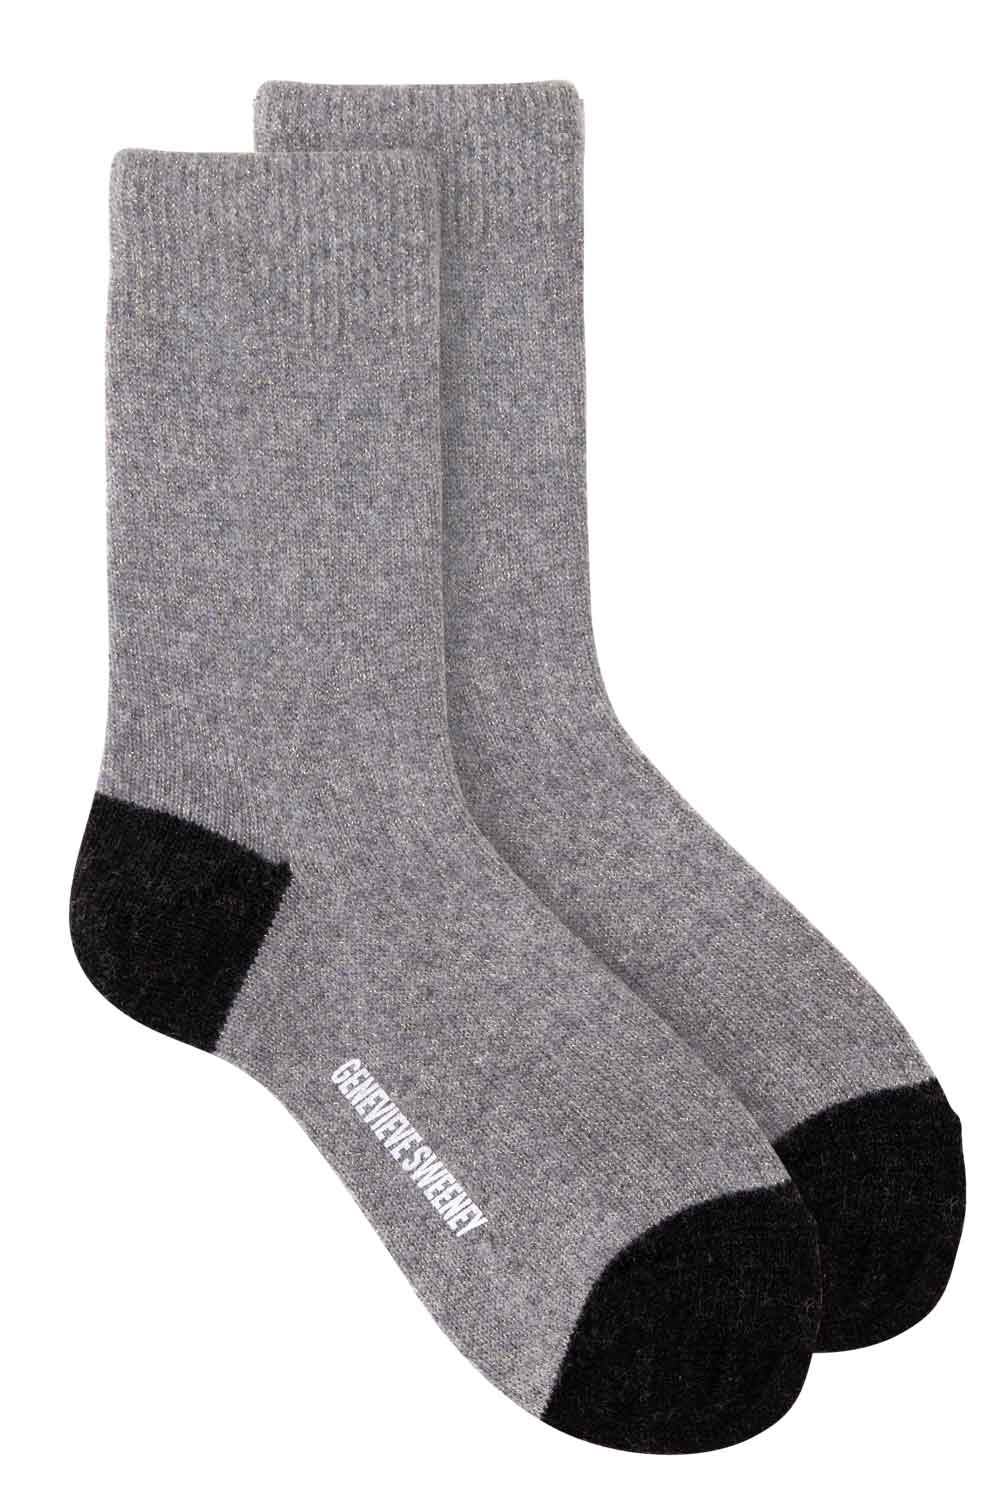 luxury grey merino cashmere sparkly lounge sock